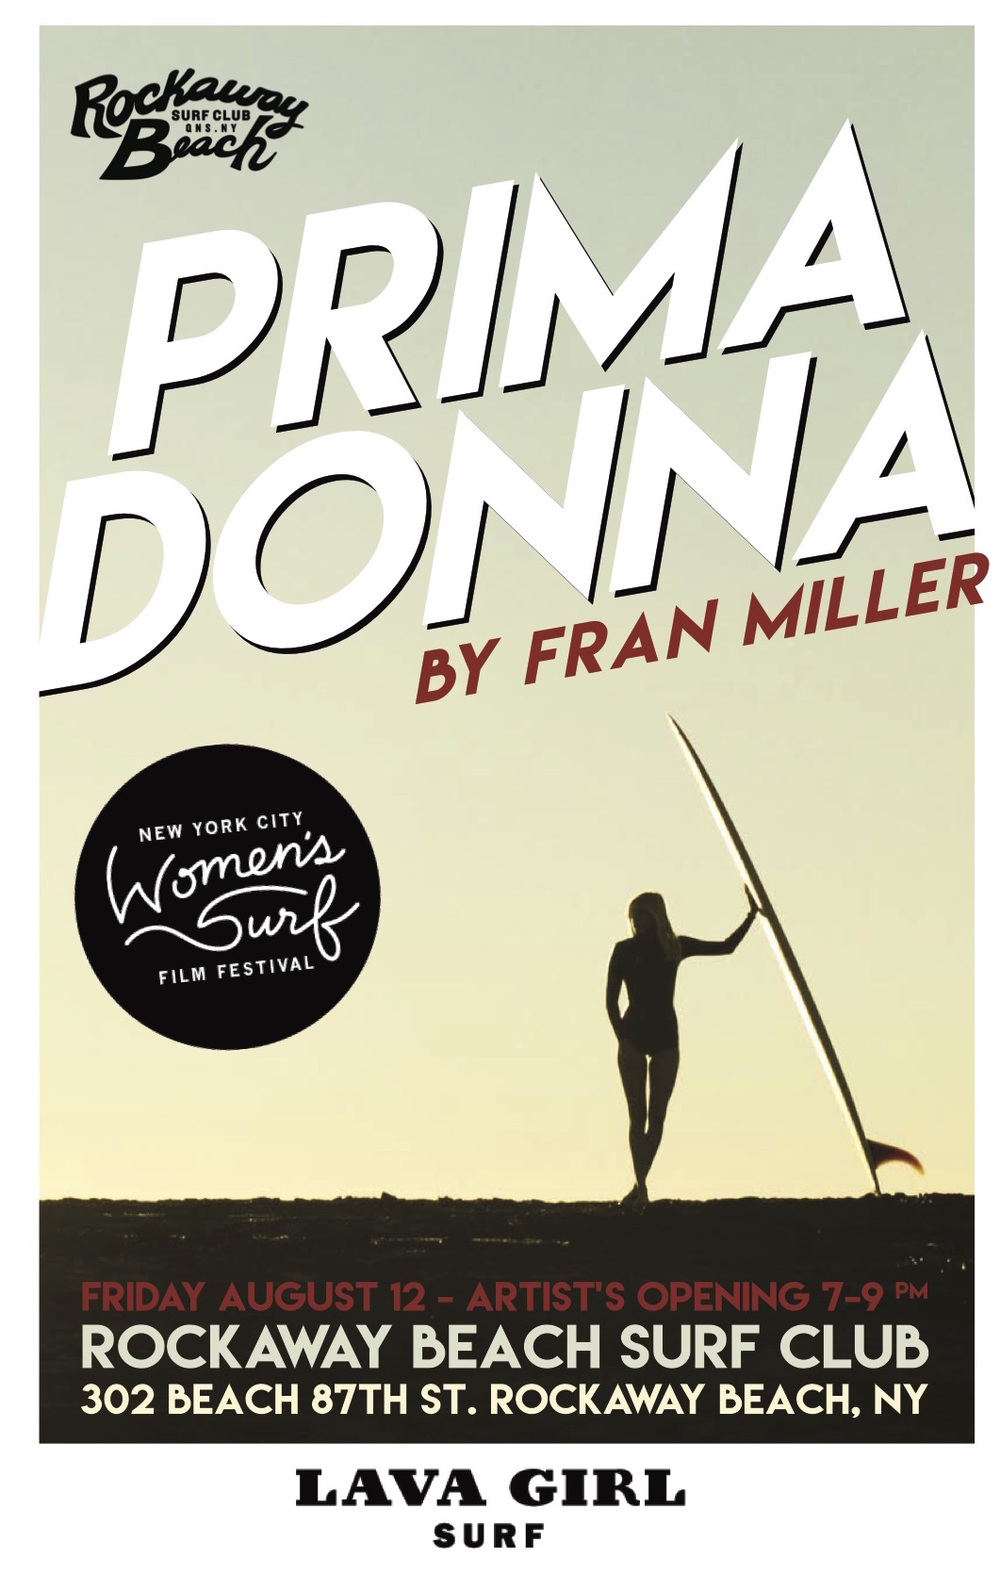 fran miller prima donna lava girl surf nyc womens surf film festival